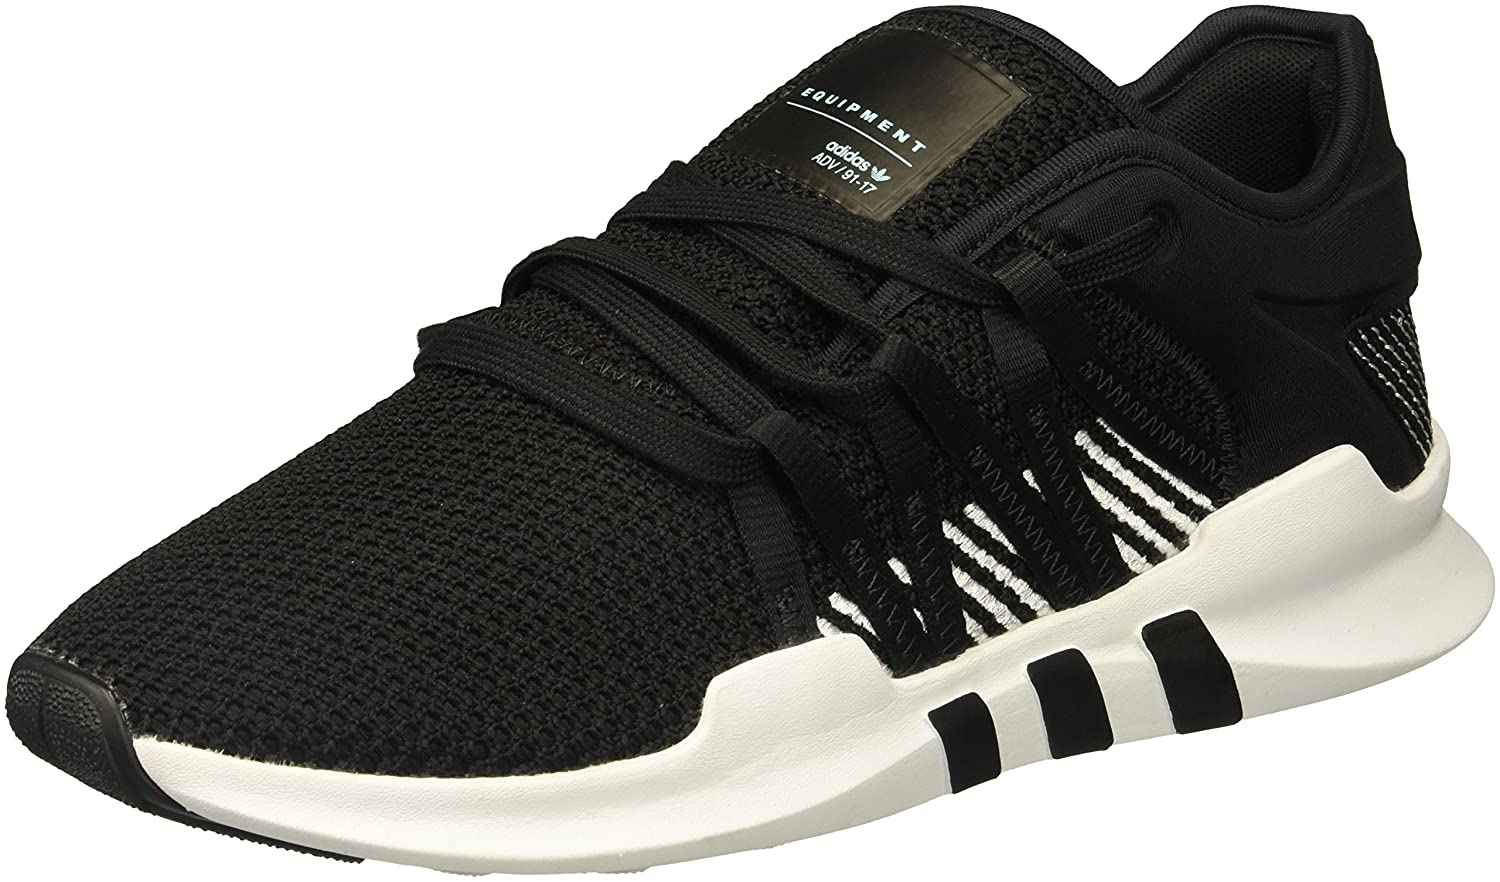 adidas Originals Women's EQT Racing Adv W Sneaker B01N7KGGS4 9.5 B(M) US|Black/Black/White